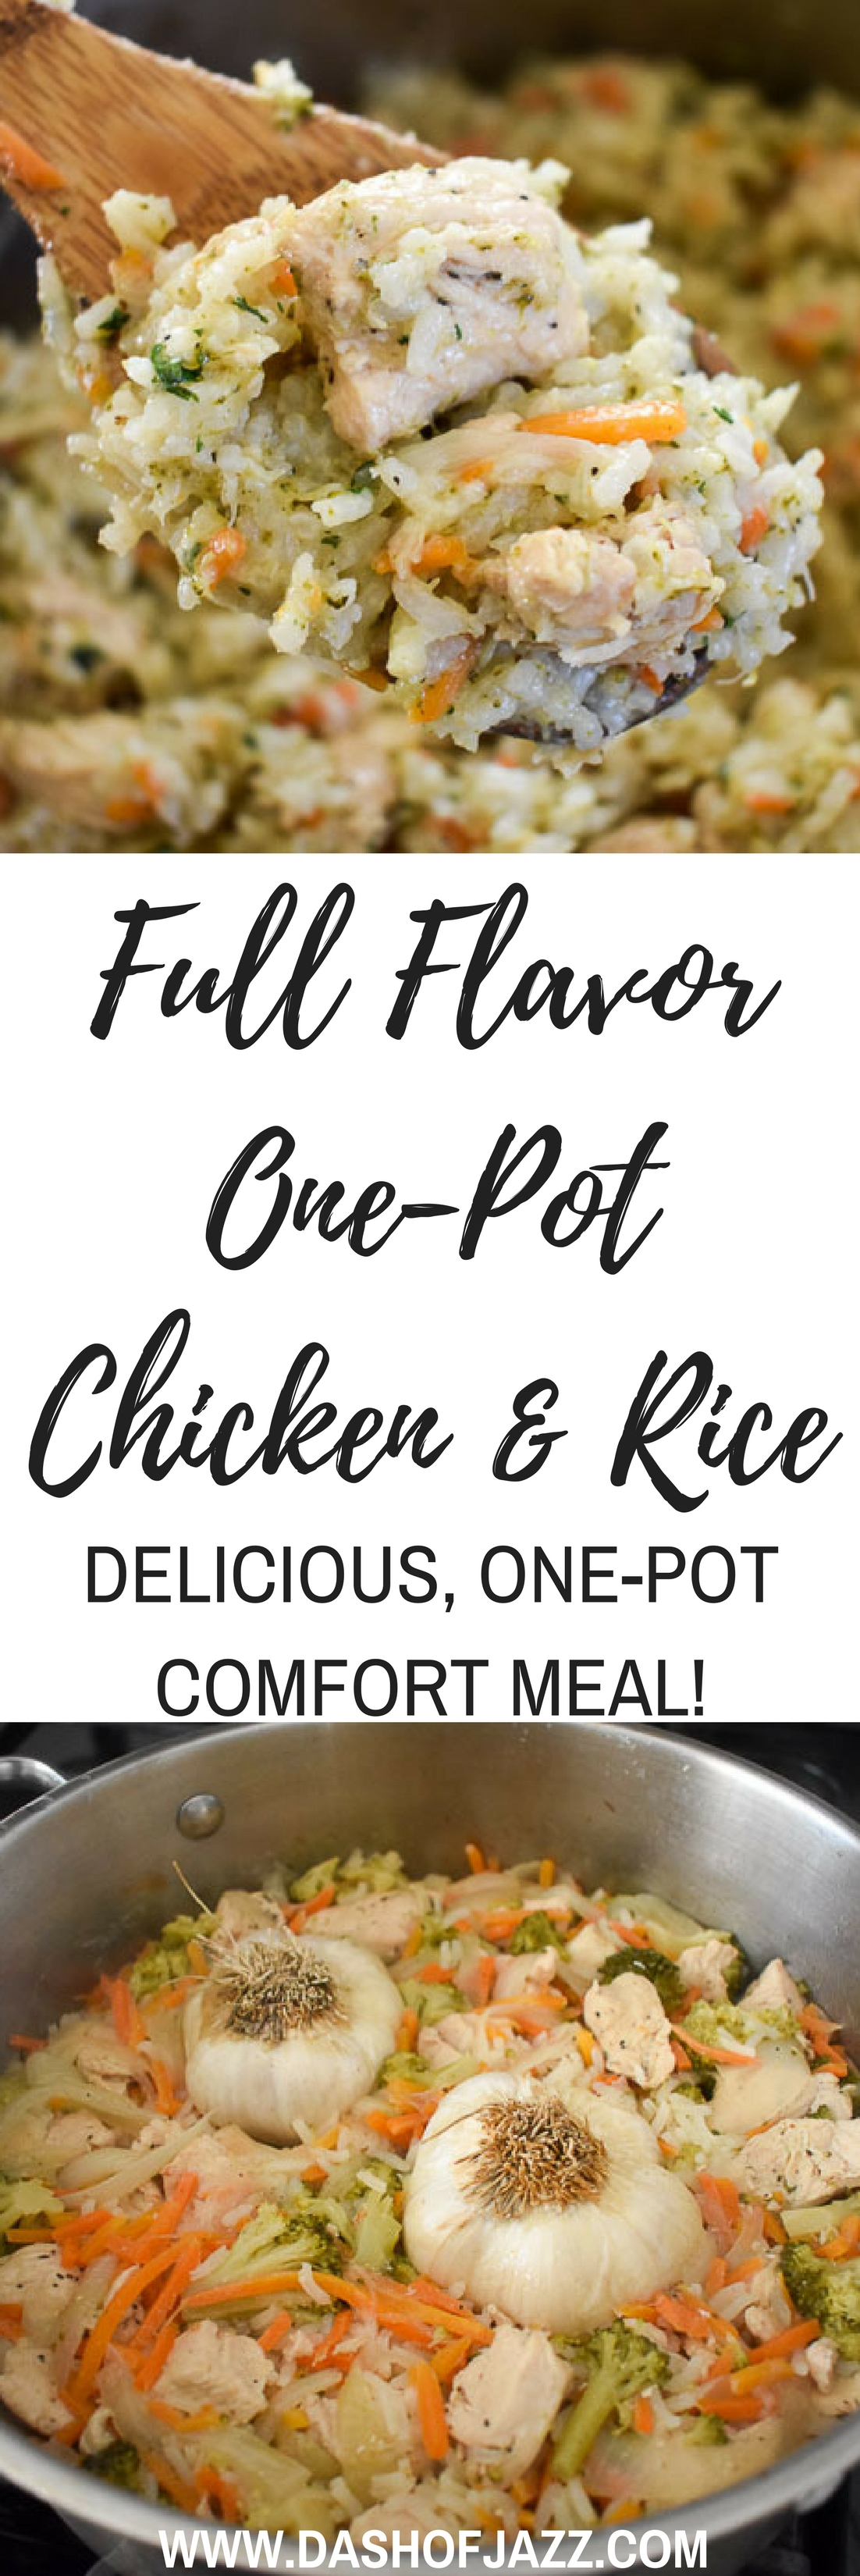 Look to this delicious, creamy one-pot chicken & rice dish when you want comfort food that\'s full of flavor and fun to make! Recipe by Dash of Jazz